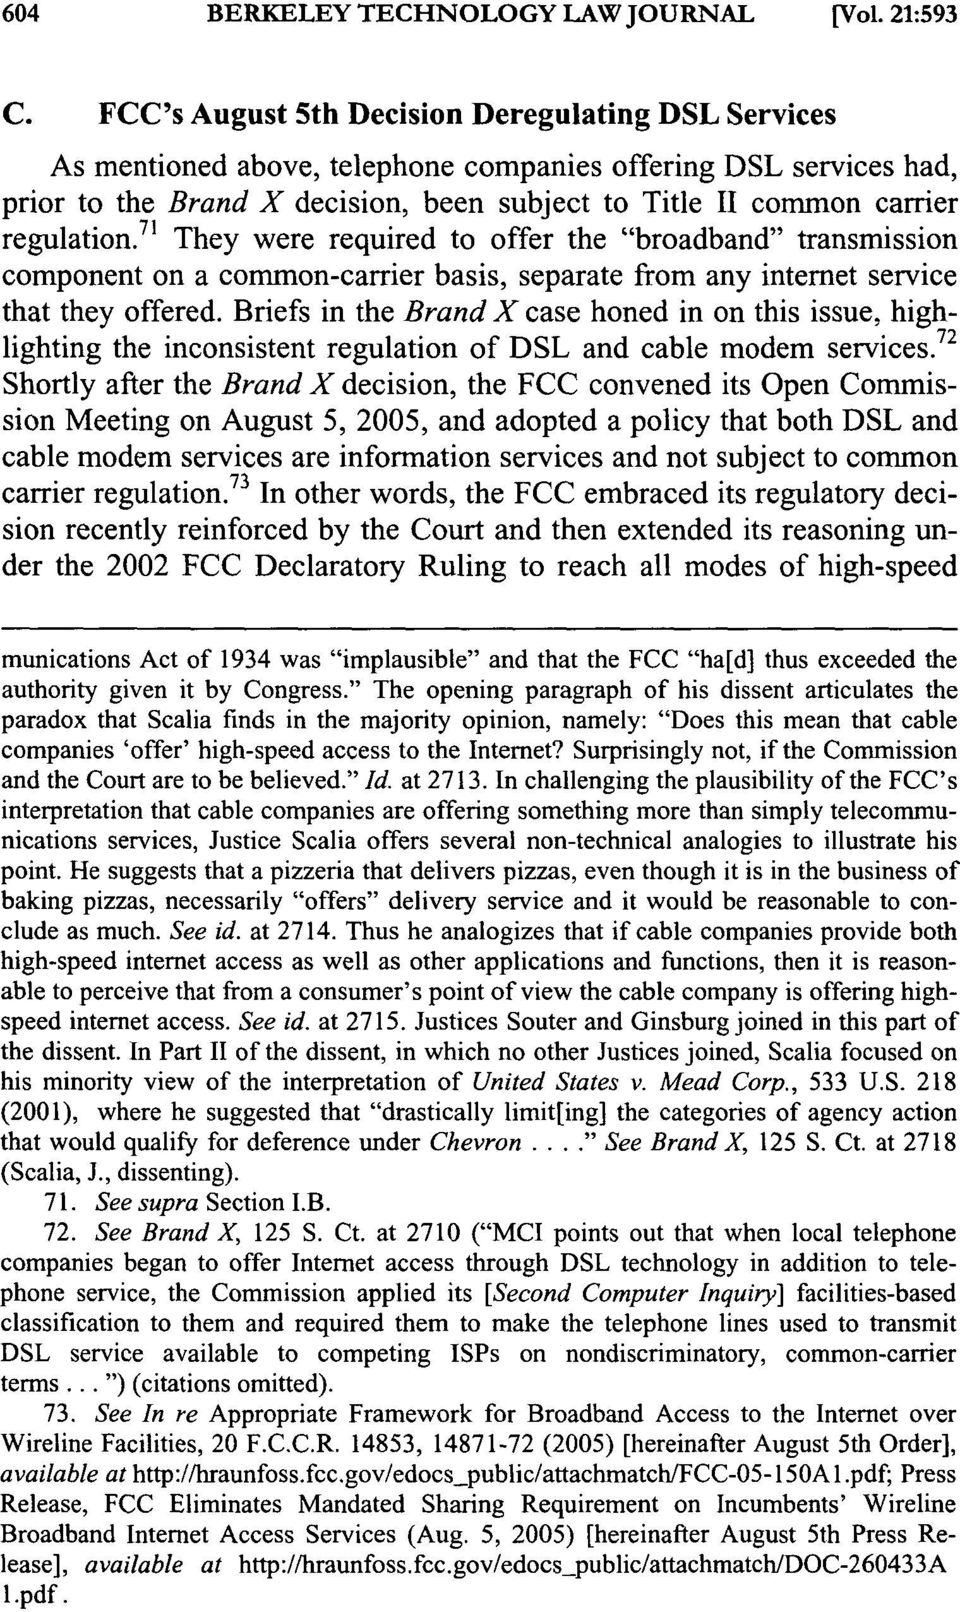 "regulation. 71 They were required to offer the ""broadband"" transmission component on a common-carrier basis, separate from any internet service that they offered."